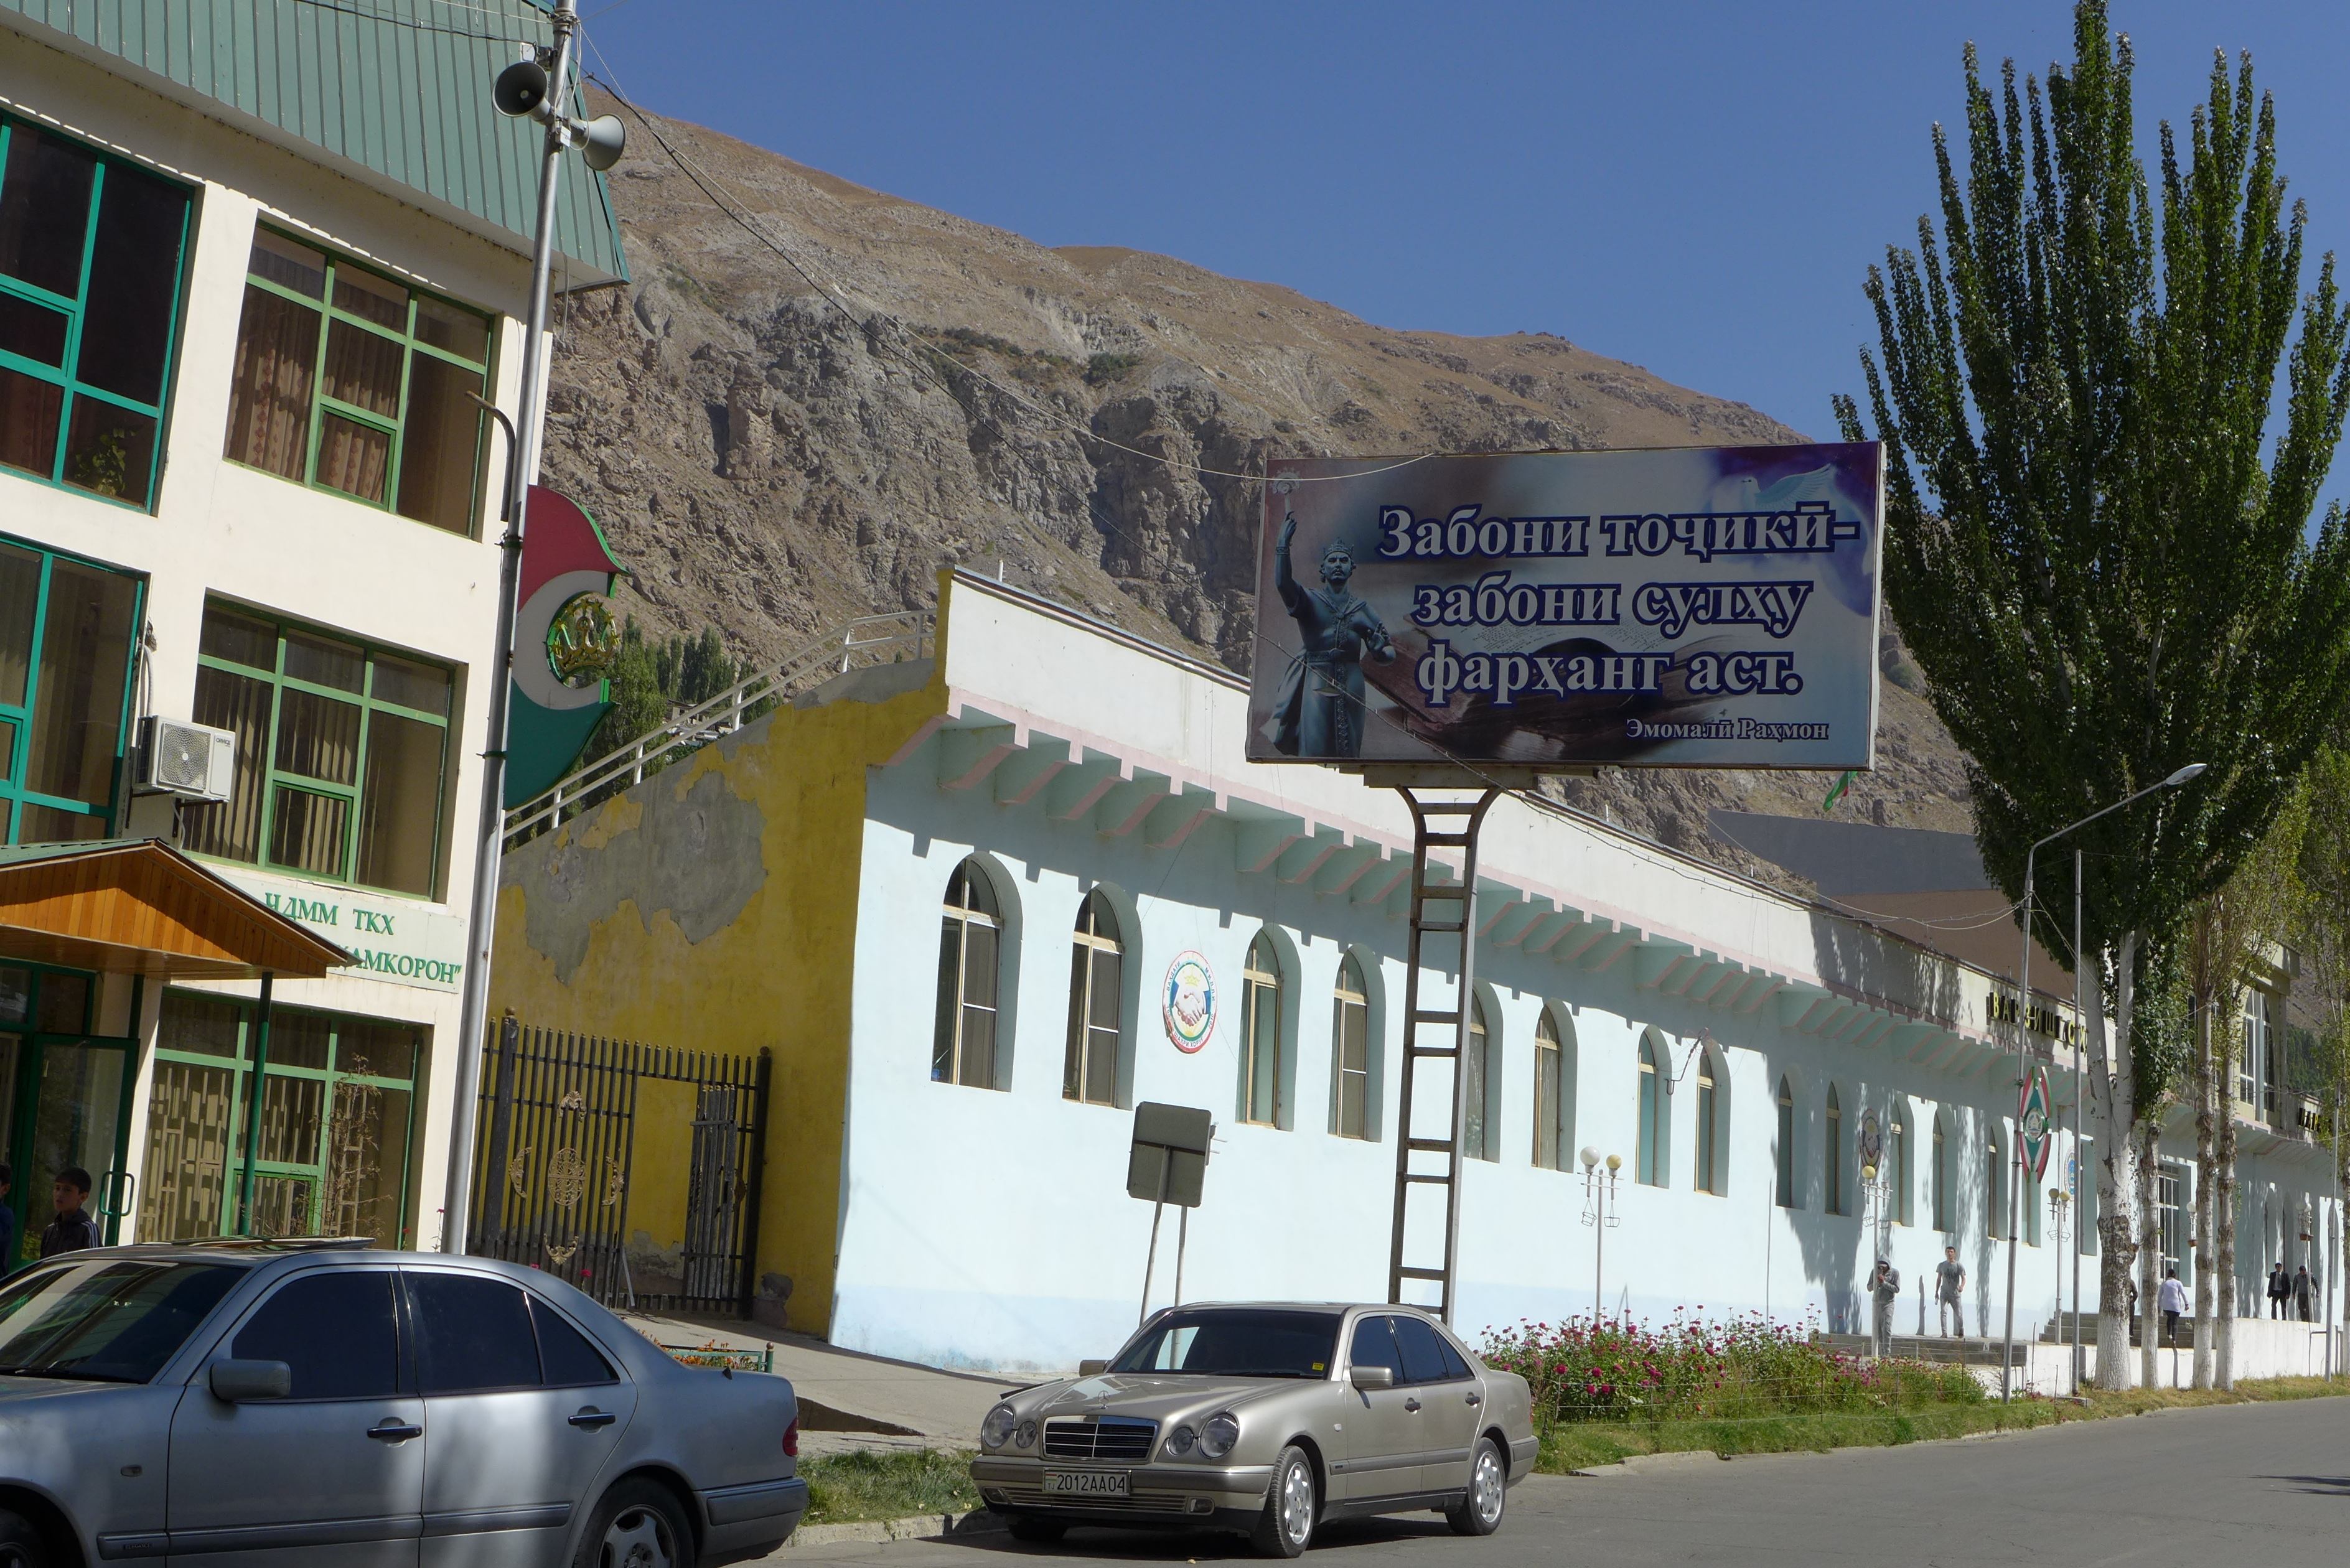 """The Tajik language is the language of peace and culture"": Language politics is one of many sources of distrust between the Pamirs and the center. (Photo: Eurasianet)"